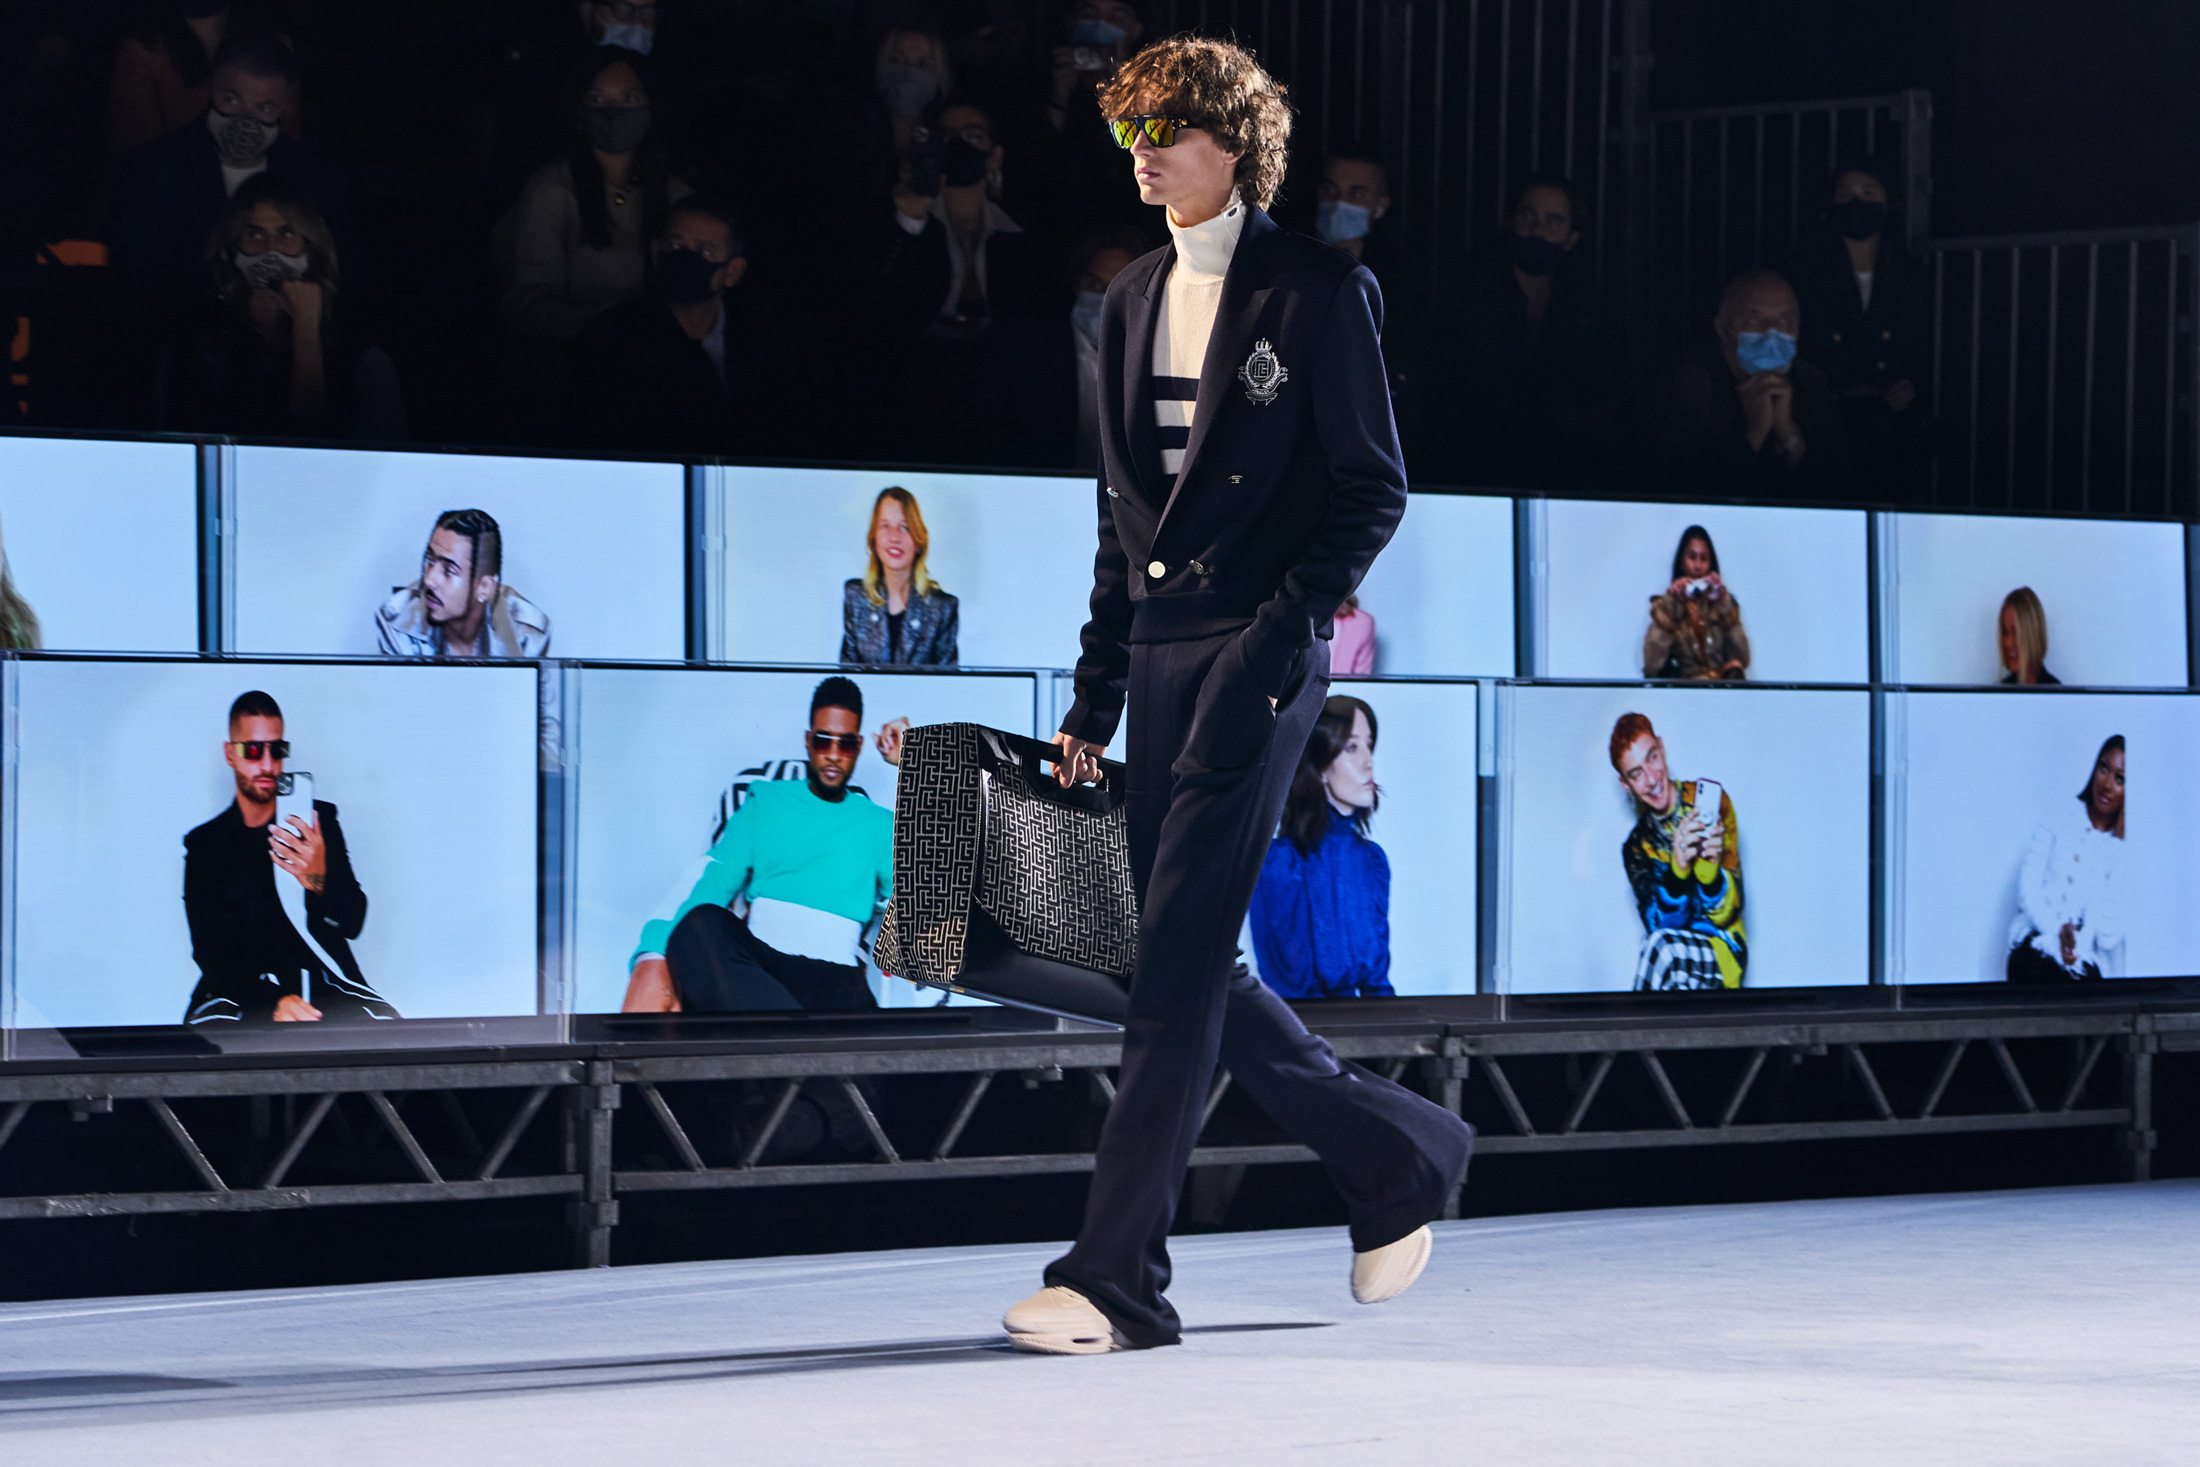 Fashion Shows - Going Back Towards Elitism